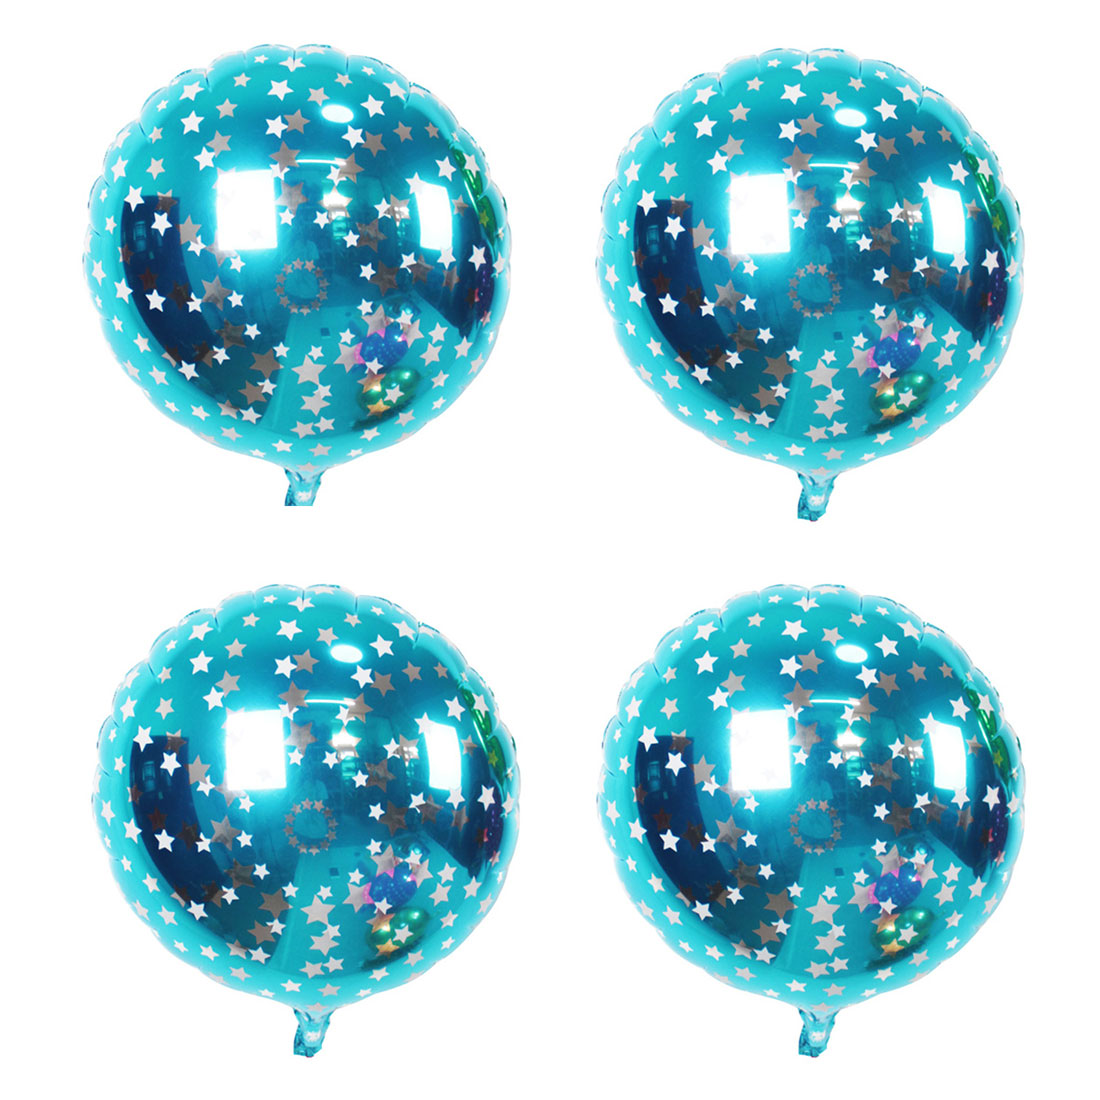 Home Birthday Wedding Foil Star Pattern Round Inflation Balloon Sky Blue 18 Inches 4pcs